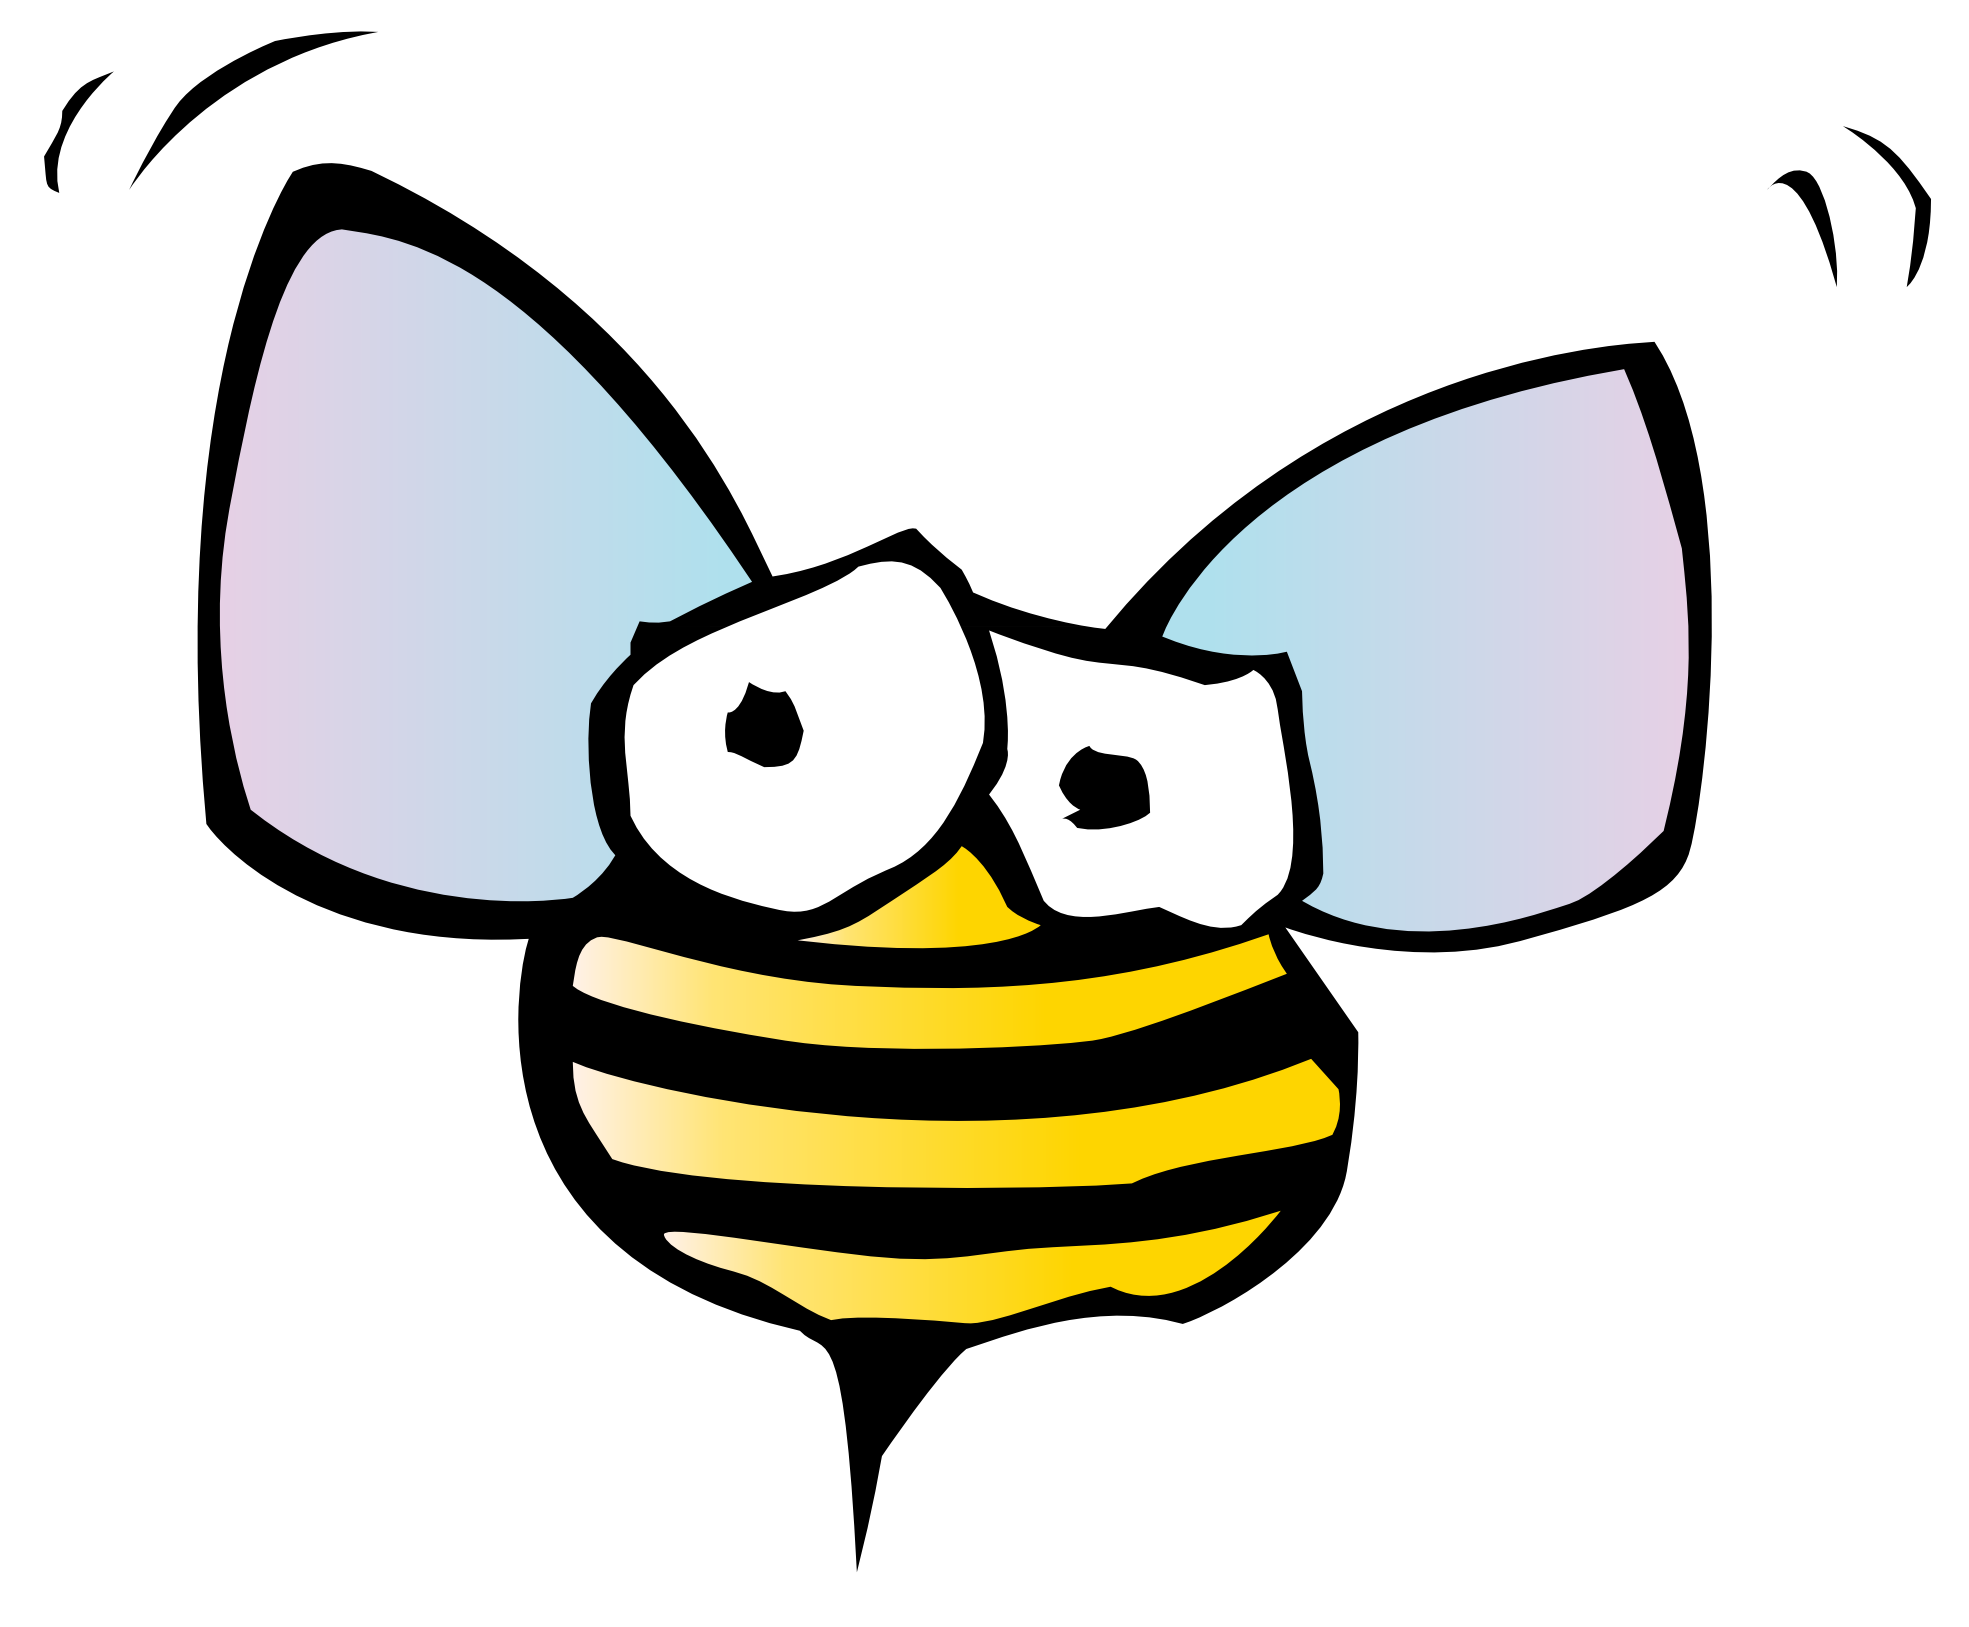 Clipart bee template. Warrior cat at getdrawings